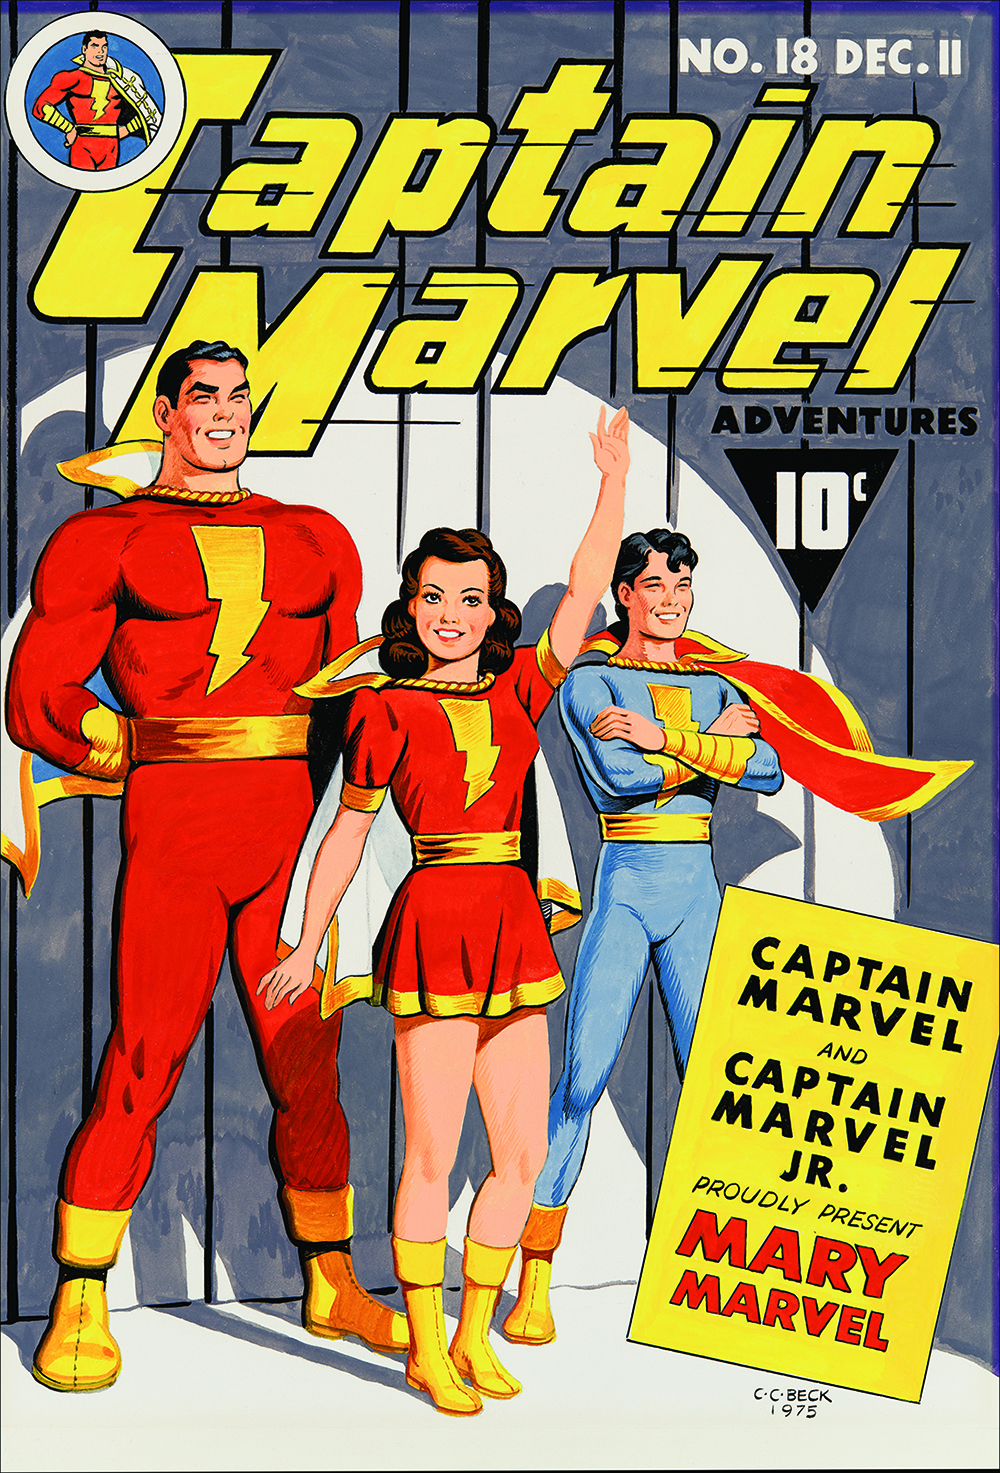 Image: Captain Marvel Adventures #18 Re-creation by C.C. Beck